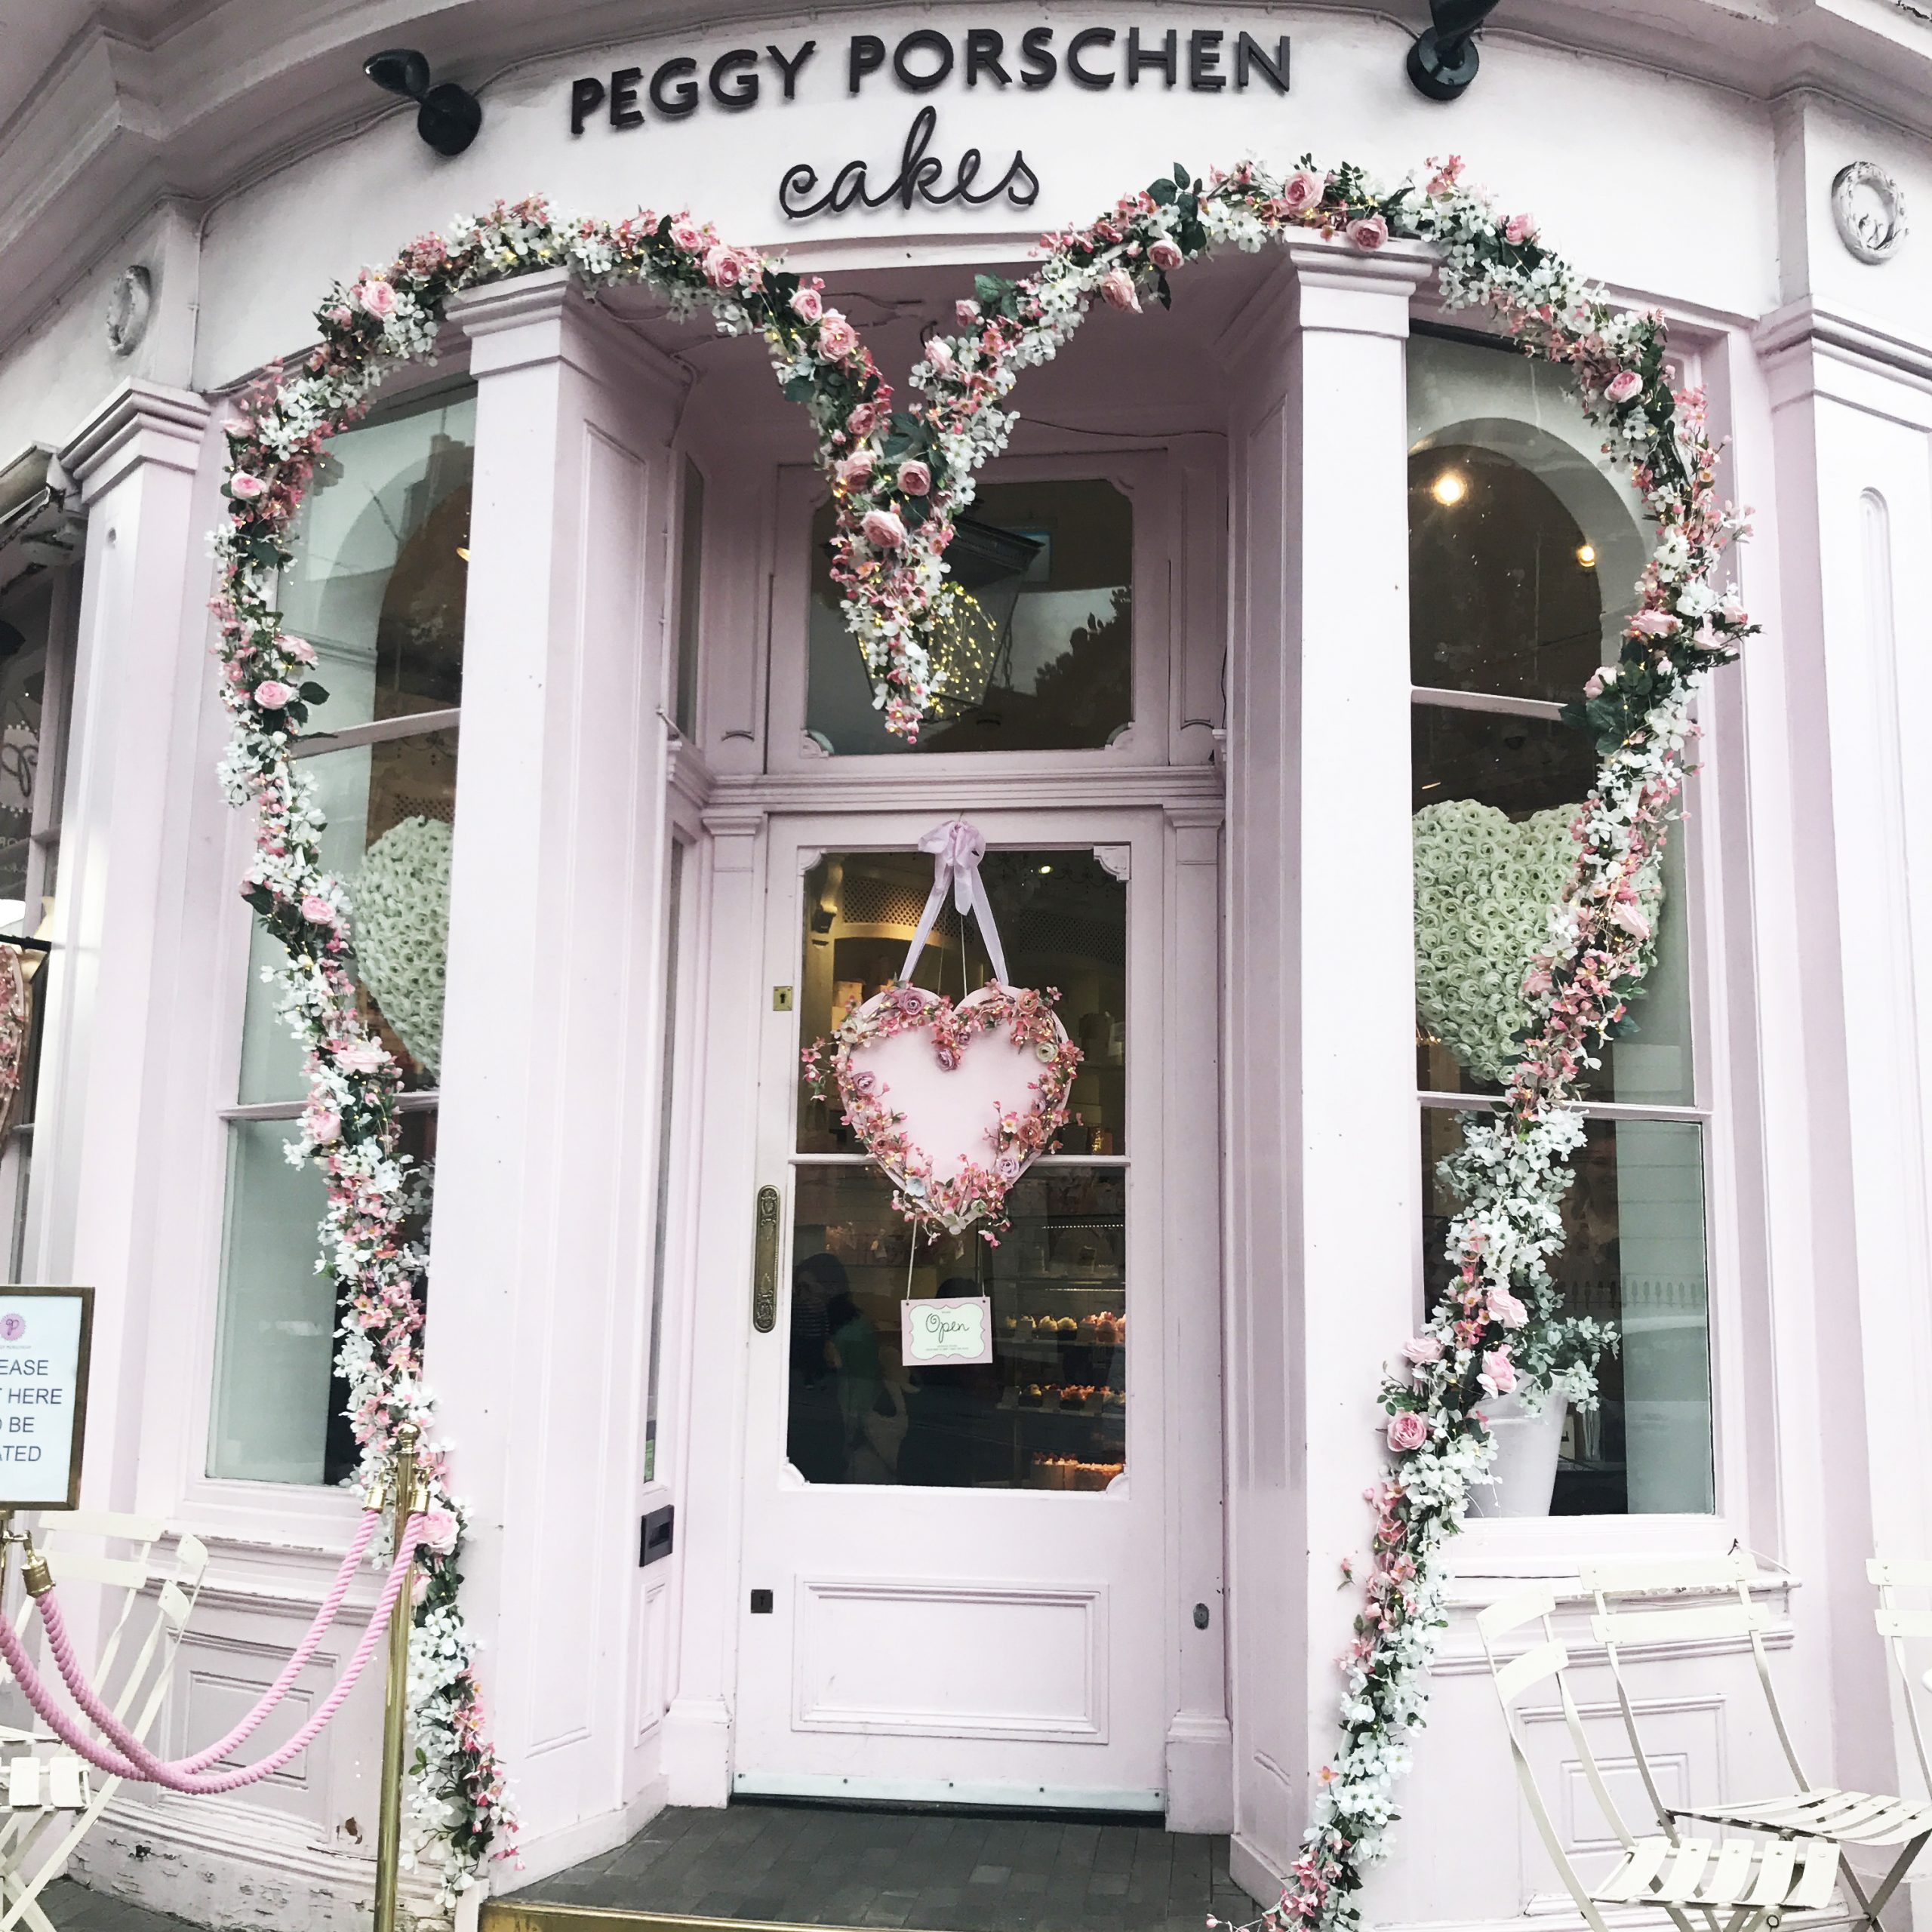 inside one of the most instagramable places in london - peggy porschen